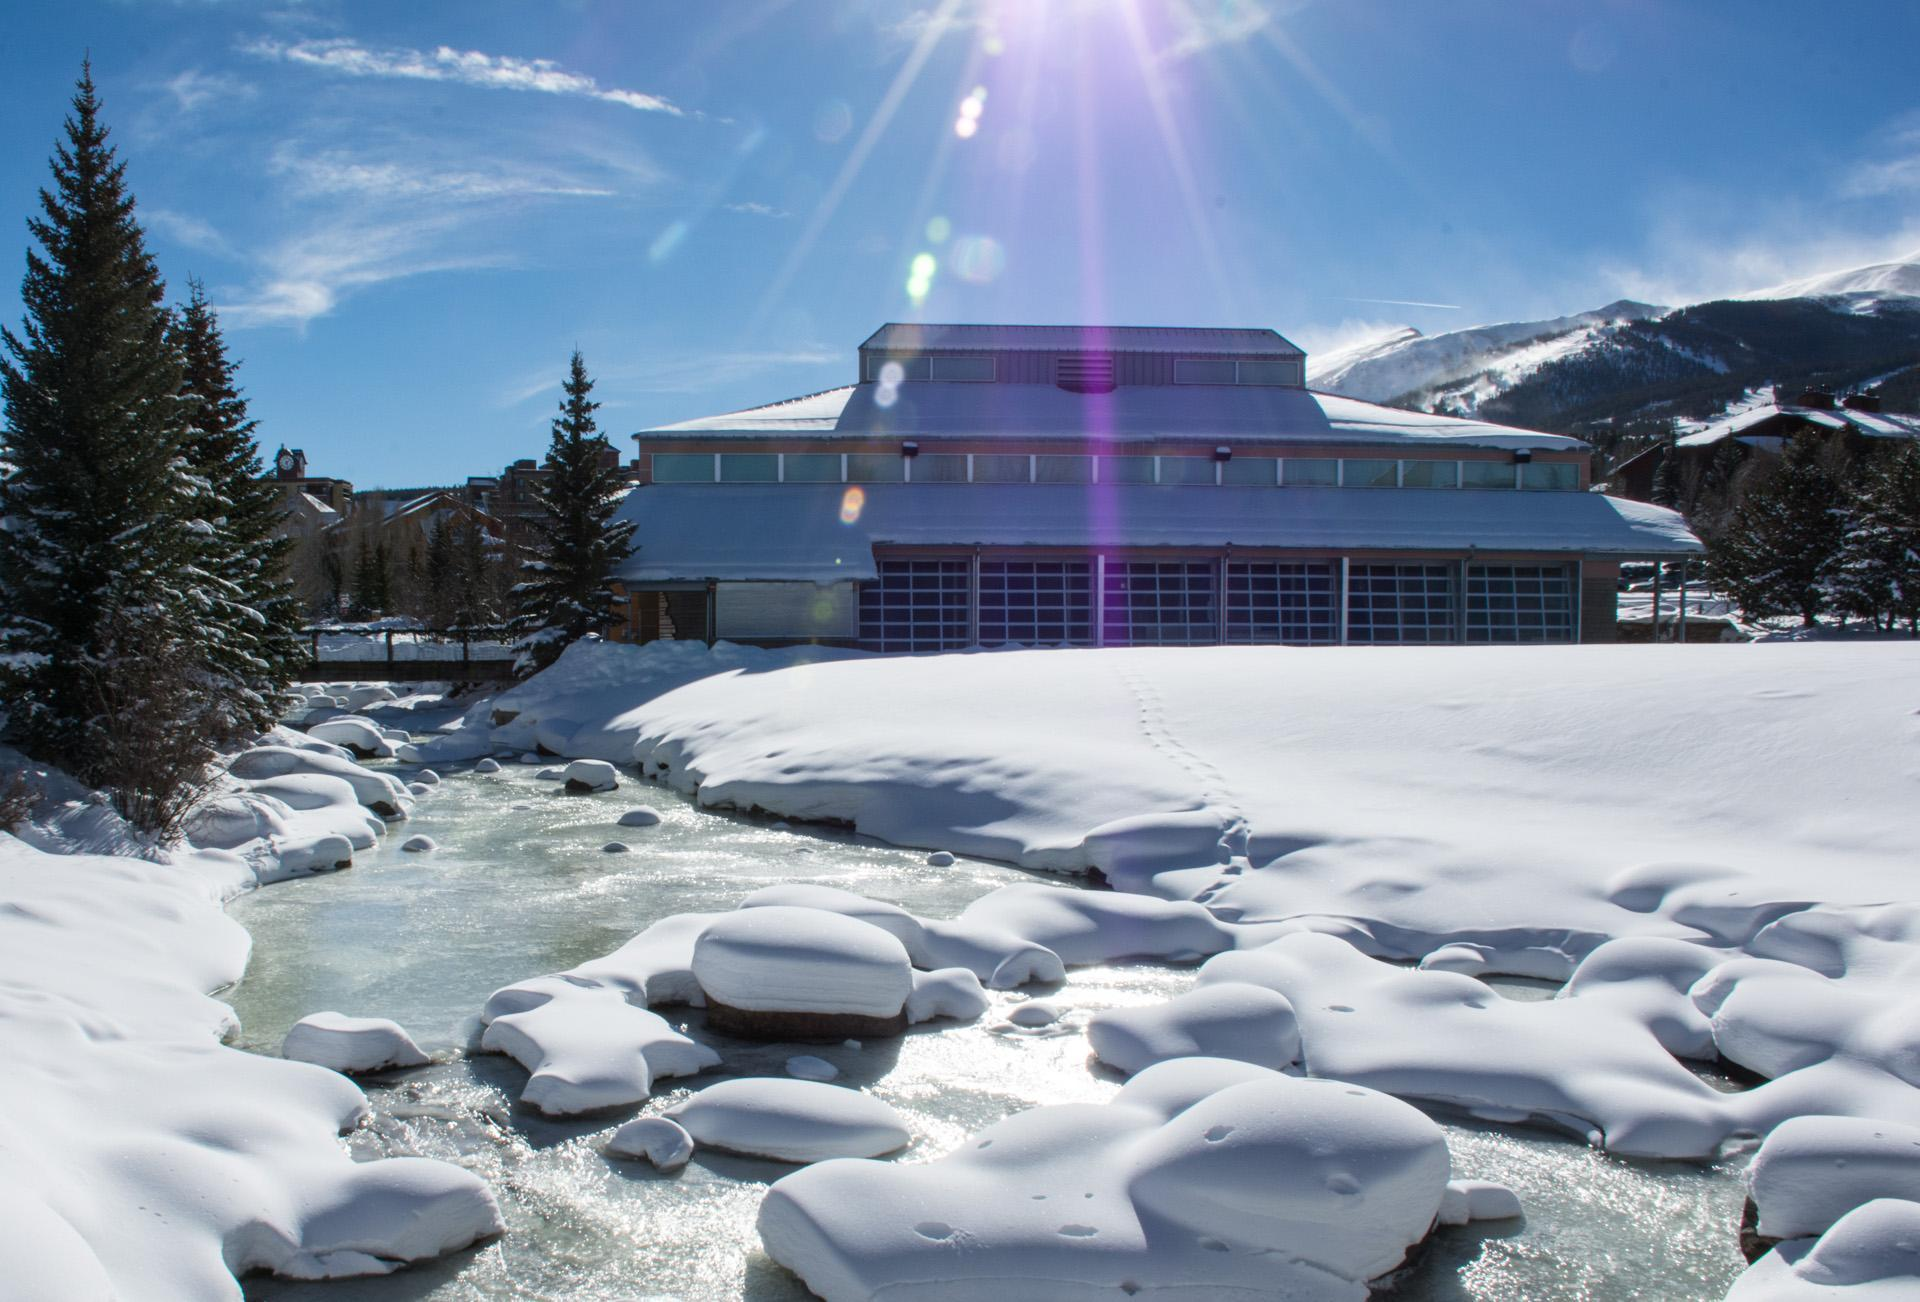 Breckenridge Associates Real Estate office on Main Street, Breckenridge, Colorado, near the Riverwalk Center and Blue River pictured here in winter